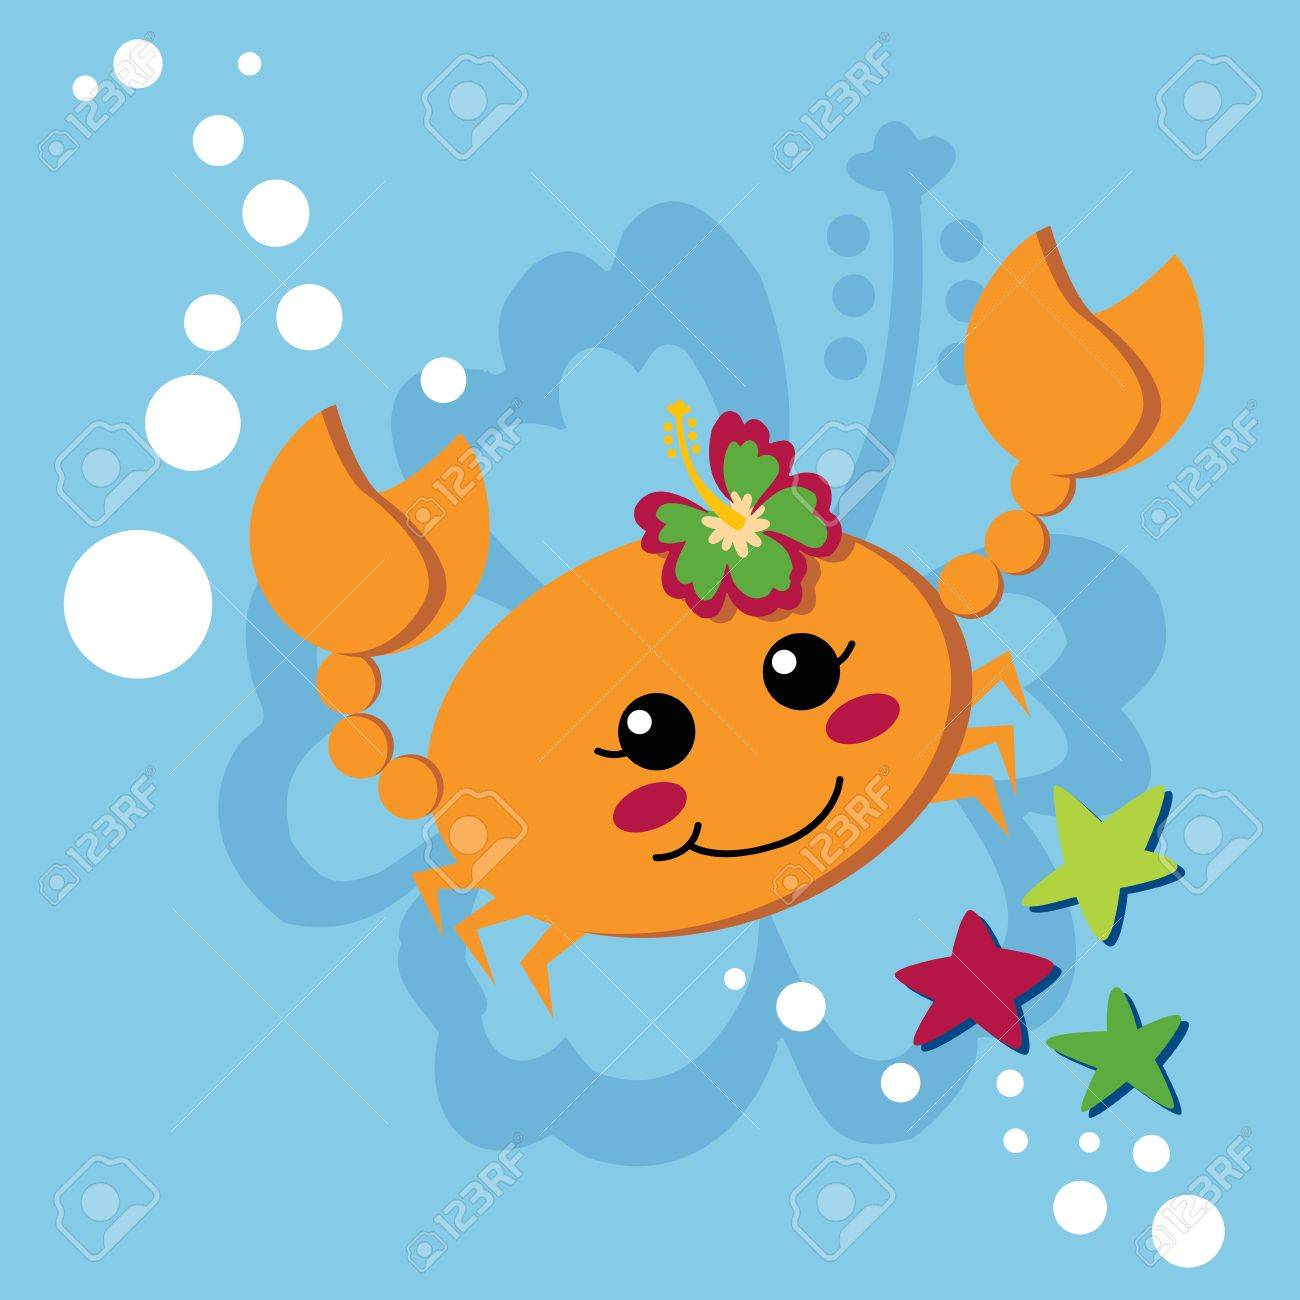 Cute orange female crab with hibiscus flower on her head waving pincers and smiling Stock Vector - 10413237